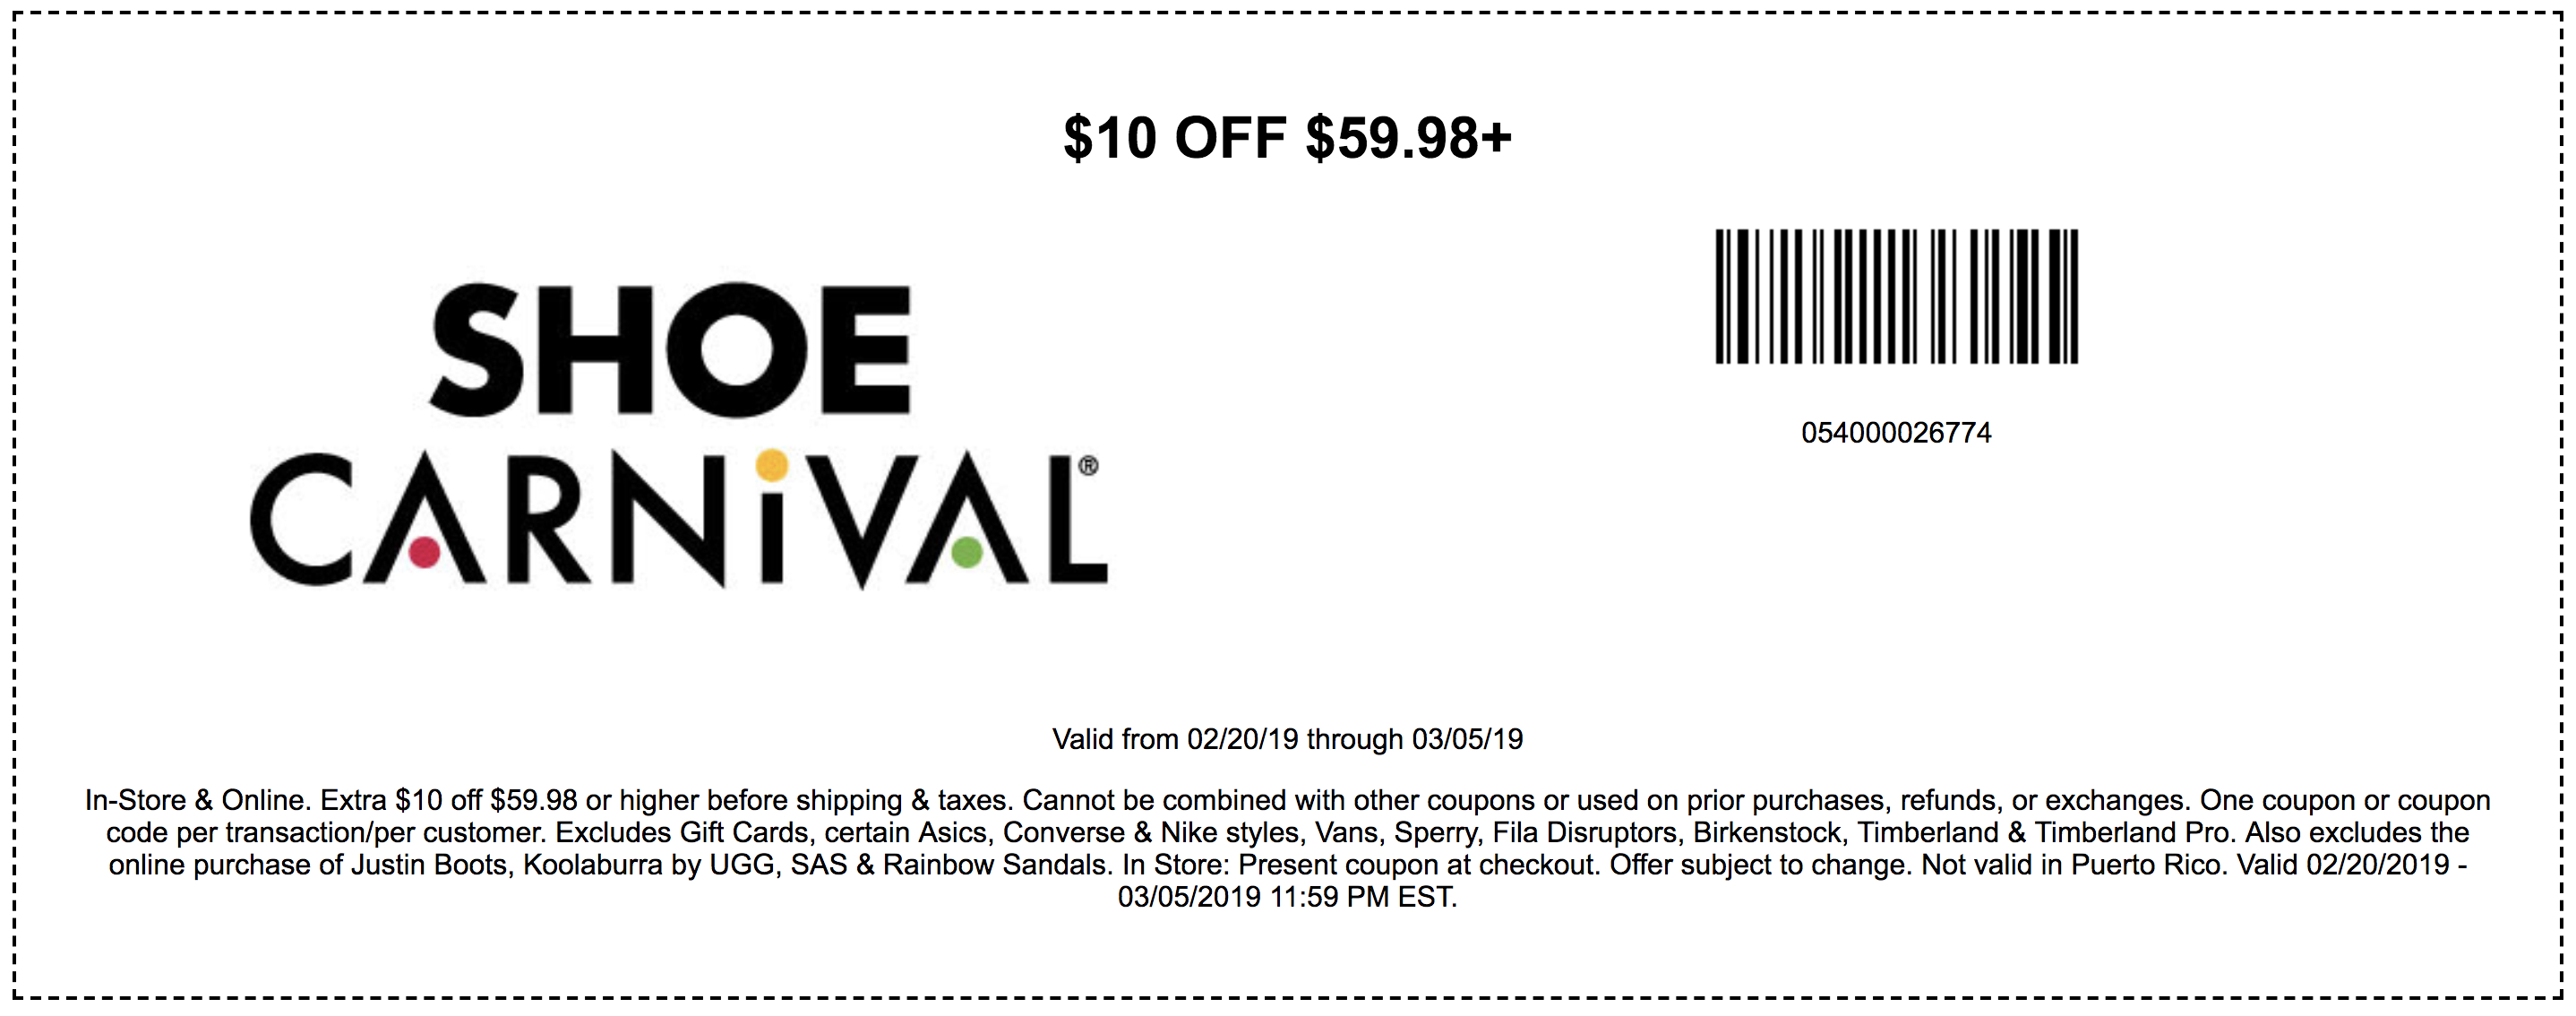 Shoe Carnival Coupons In Store (Printable Coupons) - 2019 - Free Printable Footlocker Coupons